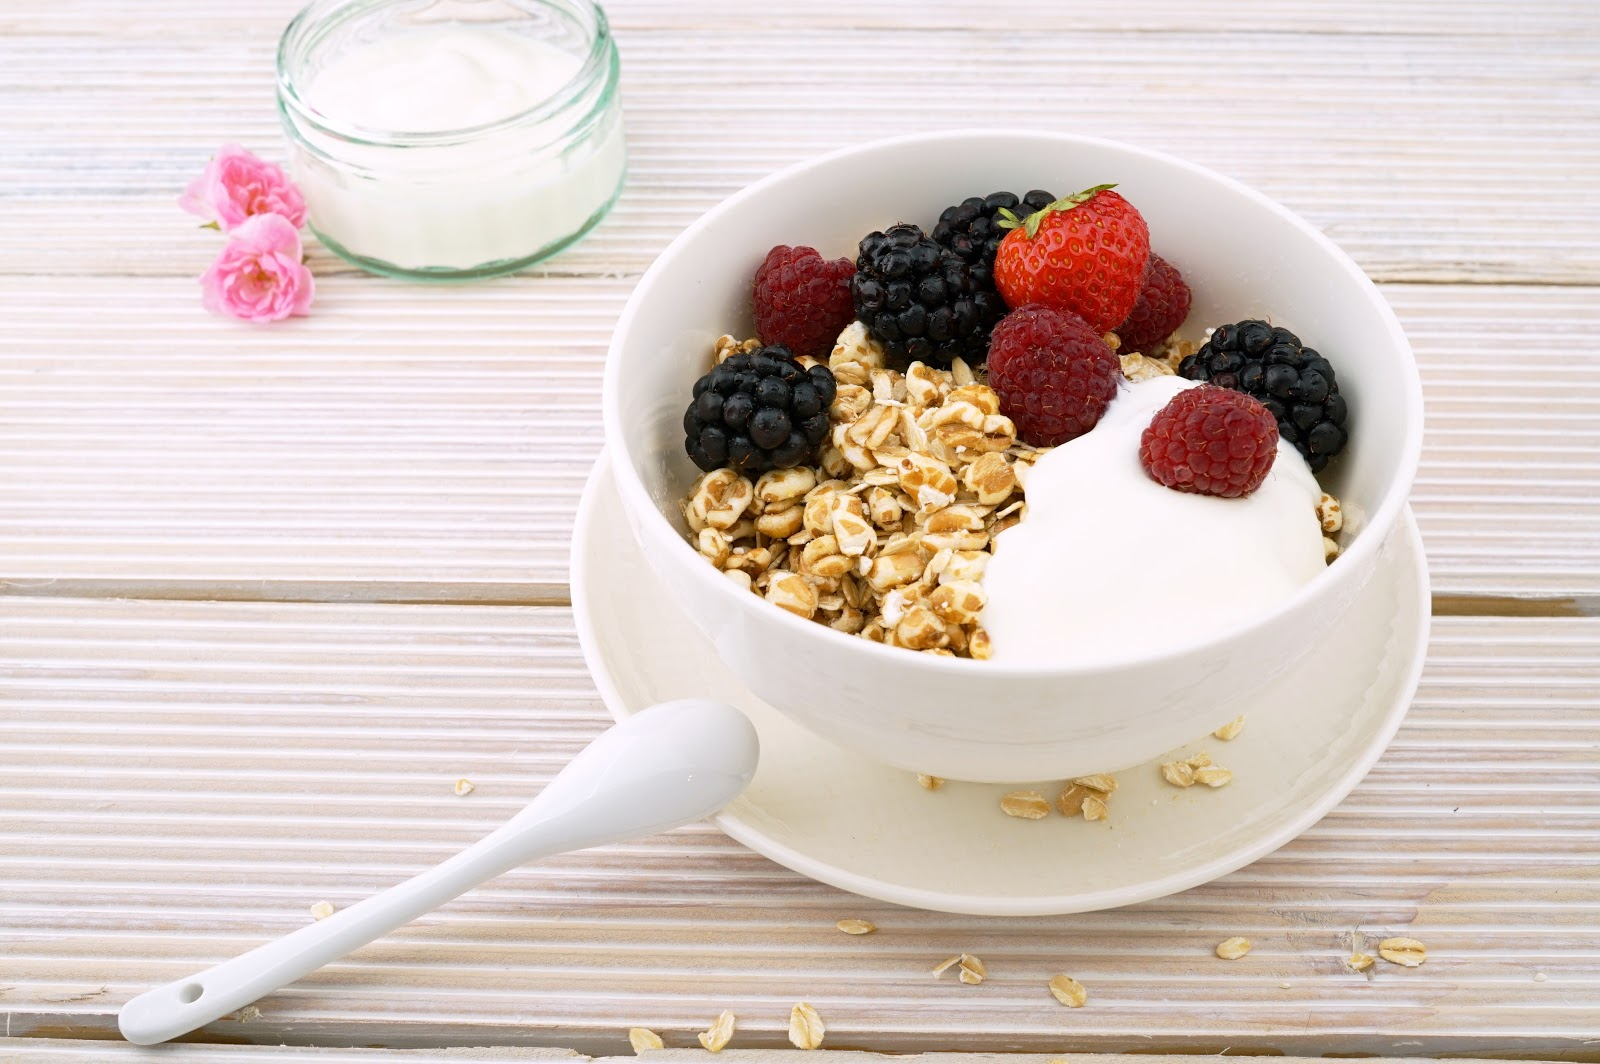 granola-and-yoghurt-with-strawberry-blueberries-and-raspberries-in-white-ceramic-bowl